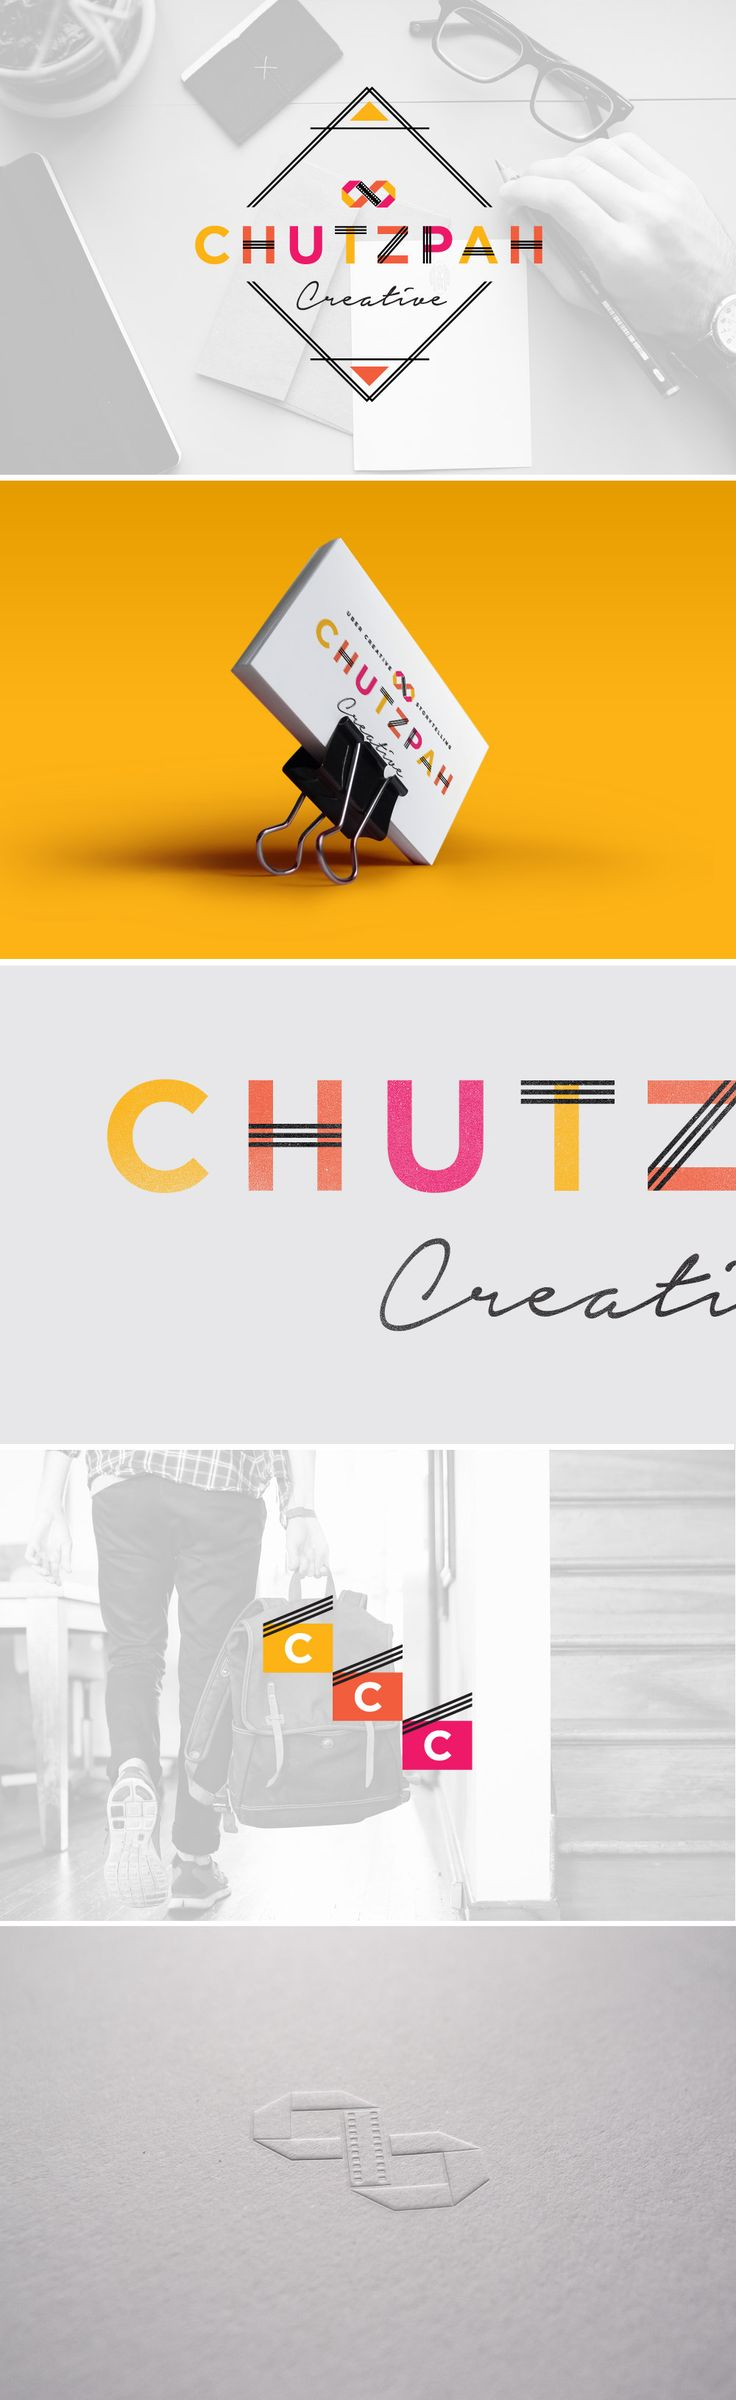 Branch | Chutzpah Creative